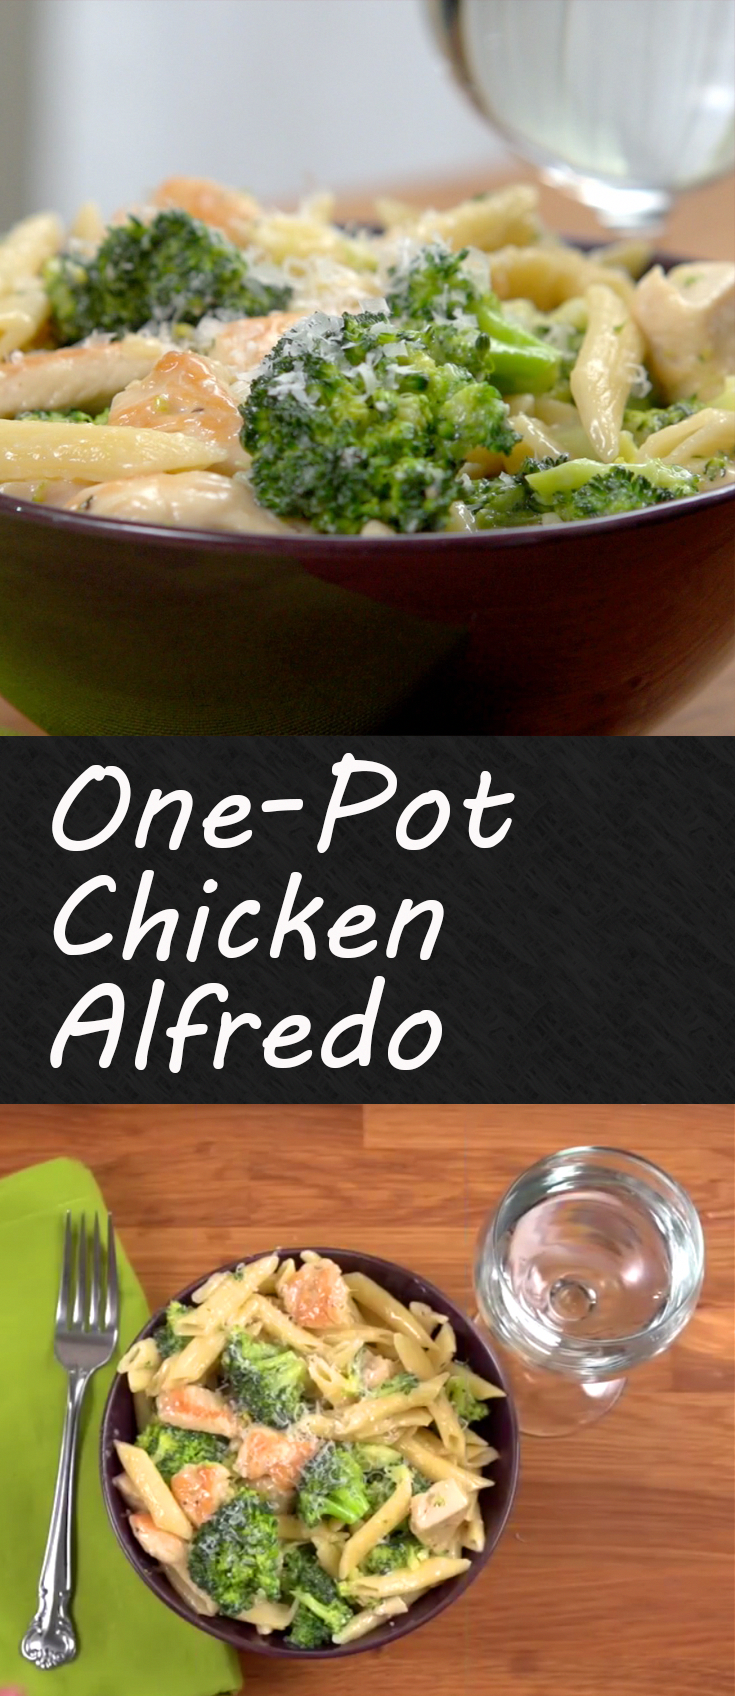 One Pot Chicken Alfredo images